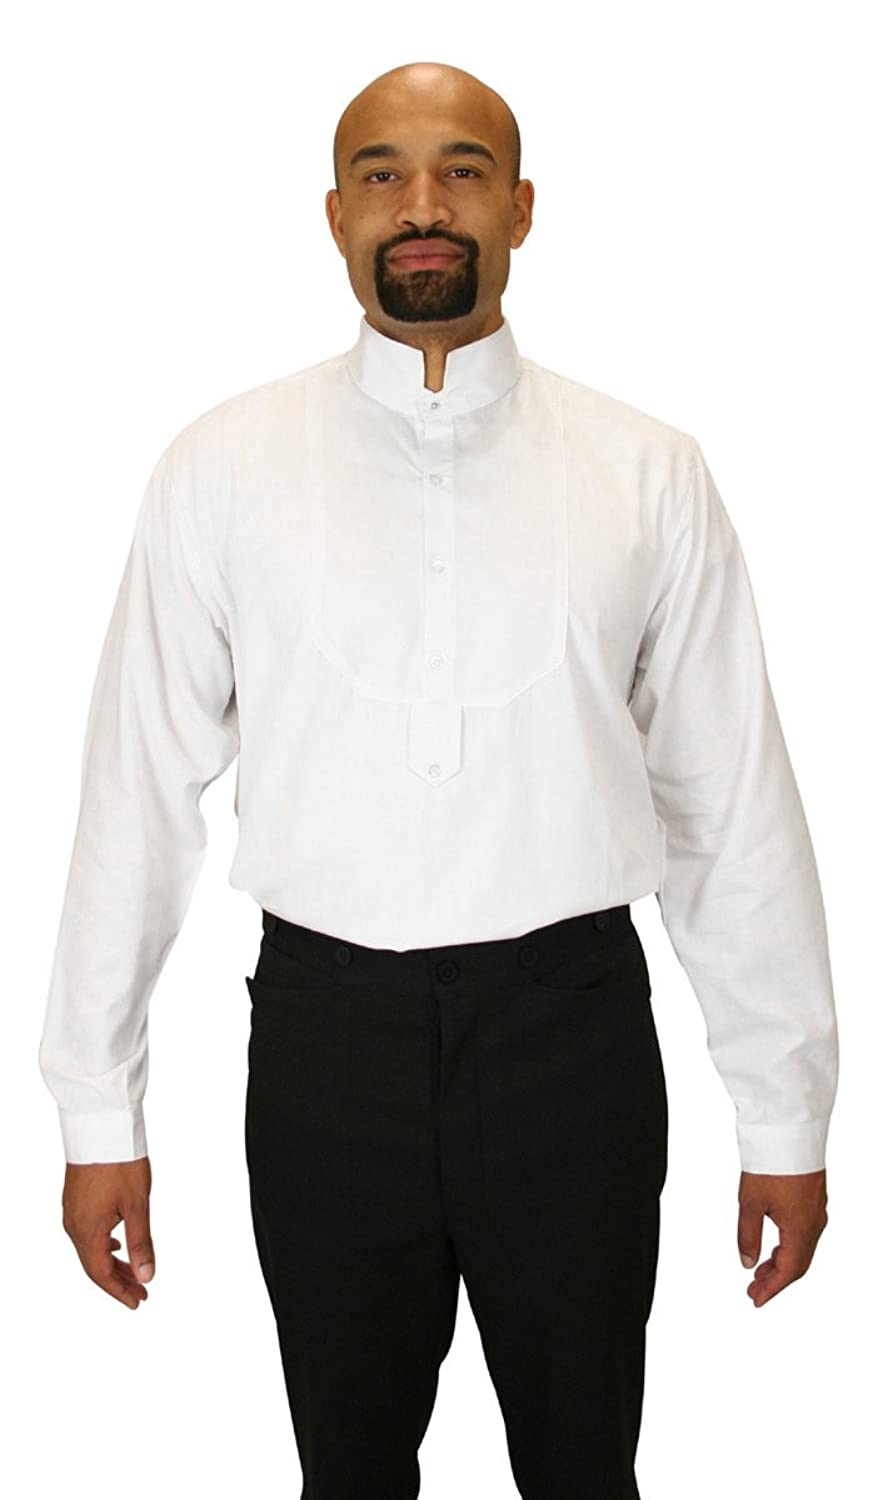 Men's Steampunk Costume Essentials Mens Victorian Collar Dress Shirt $59.95 AT vintagedancer.com